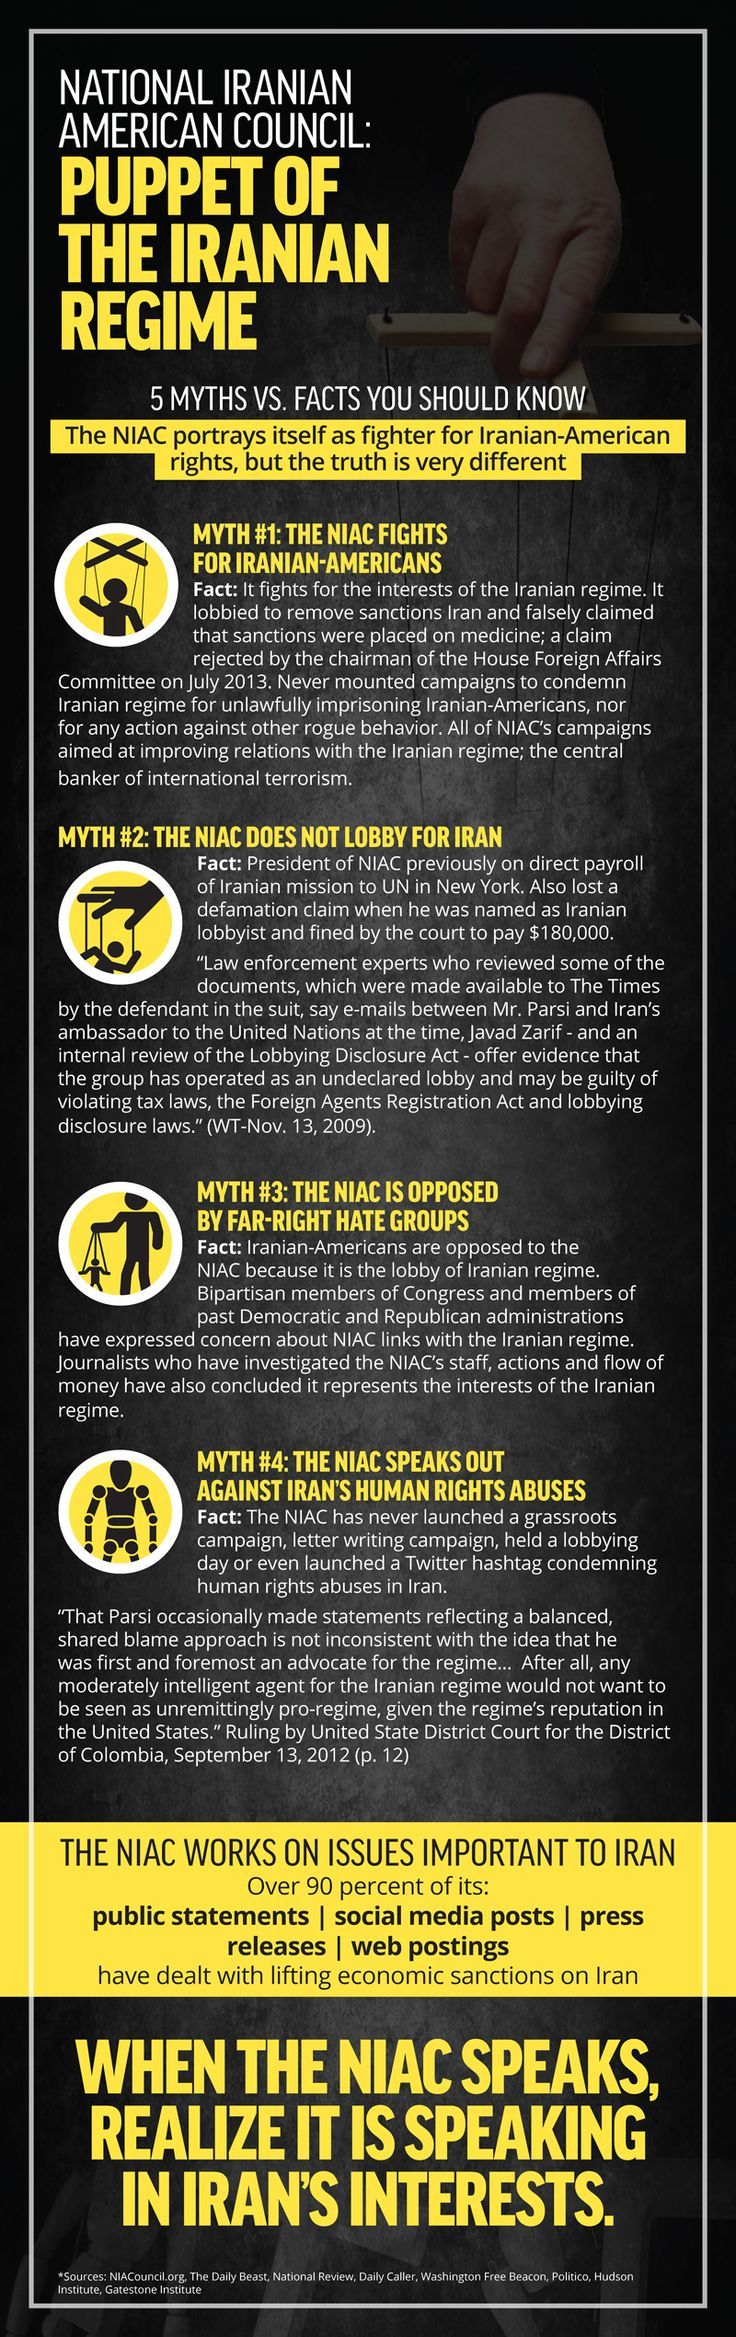 Great #infographic detailing the real Myths vs. Facts surrounding the National Iranian American Council (NIAC). Don't believe for a minute they're working for Iranian-Americans.